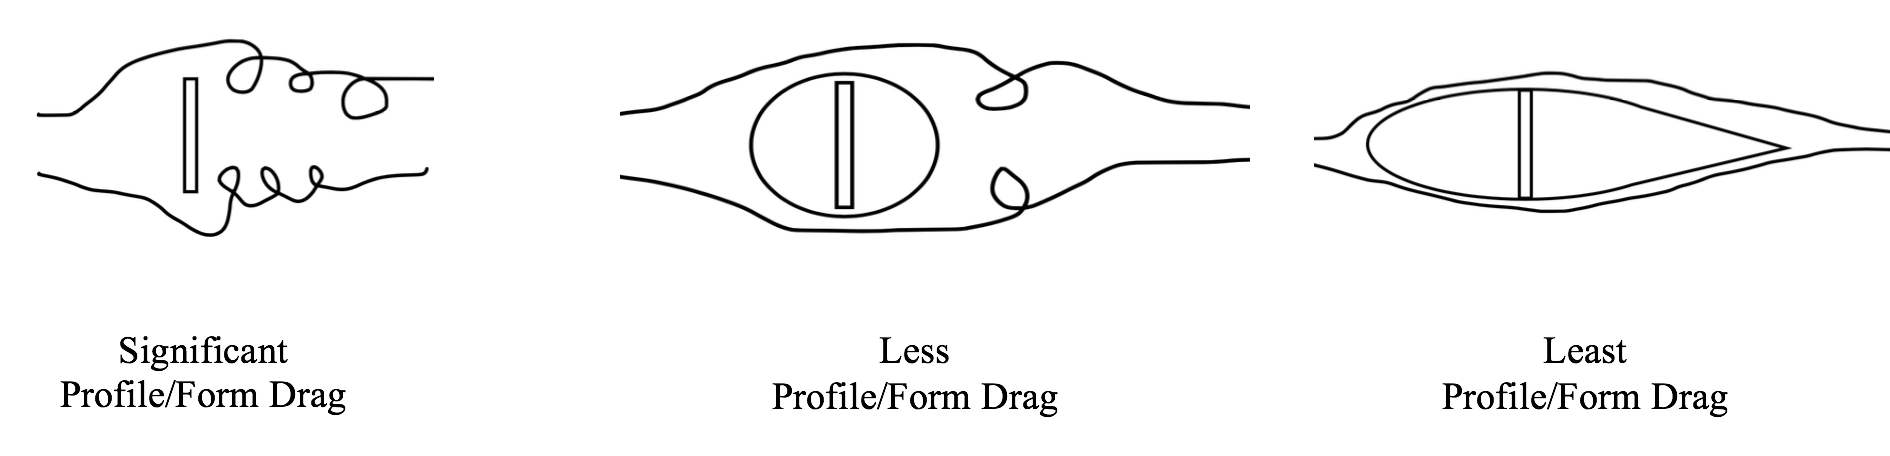 Diagram of various profile-form drag combinations